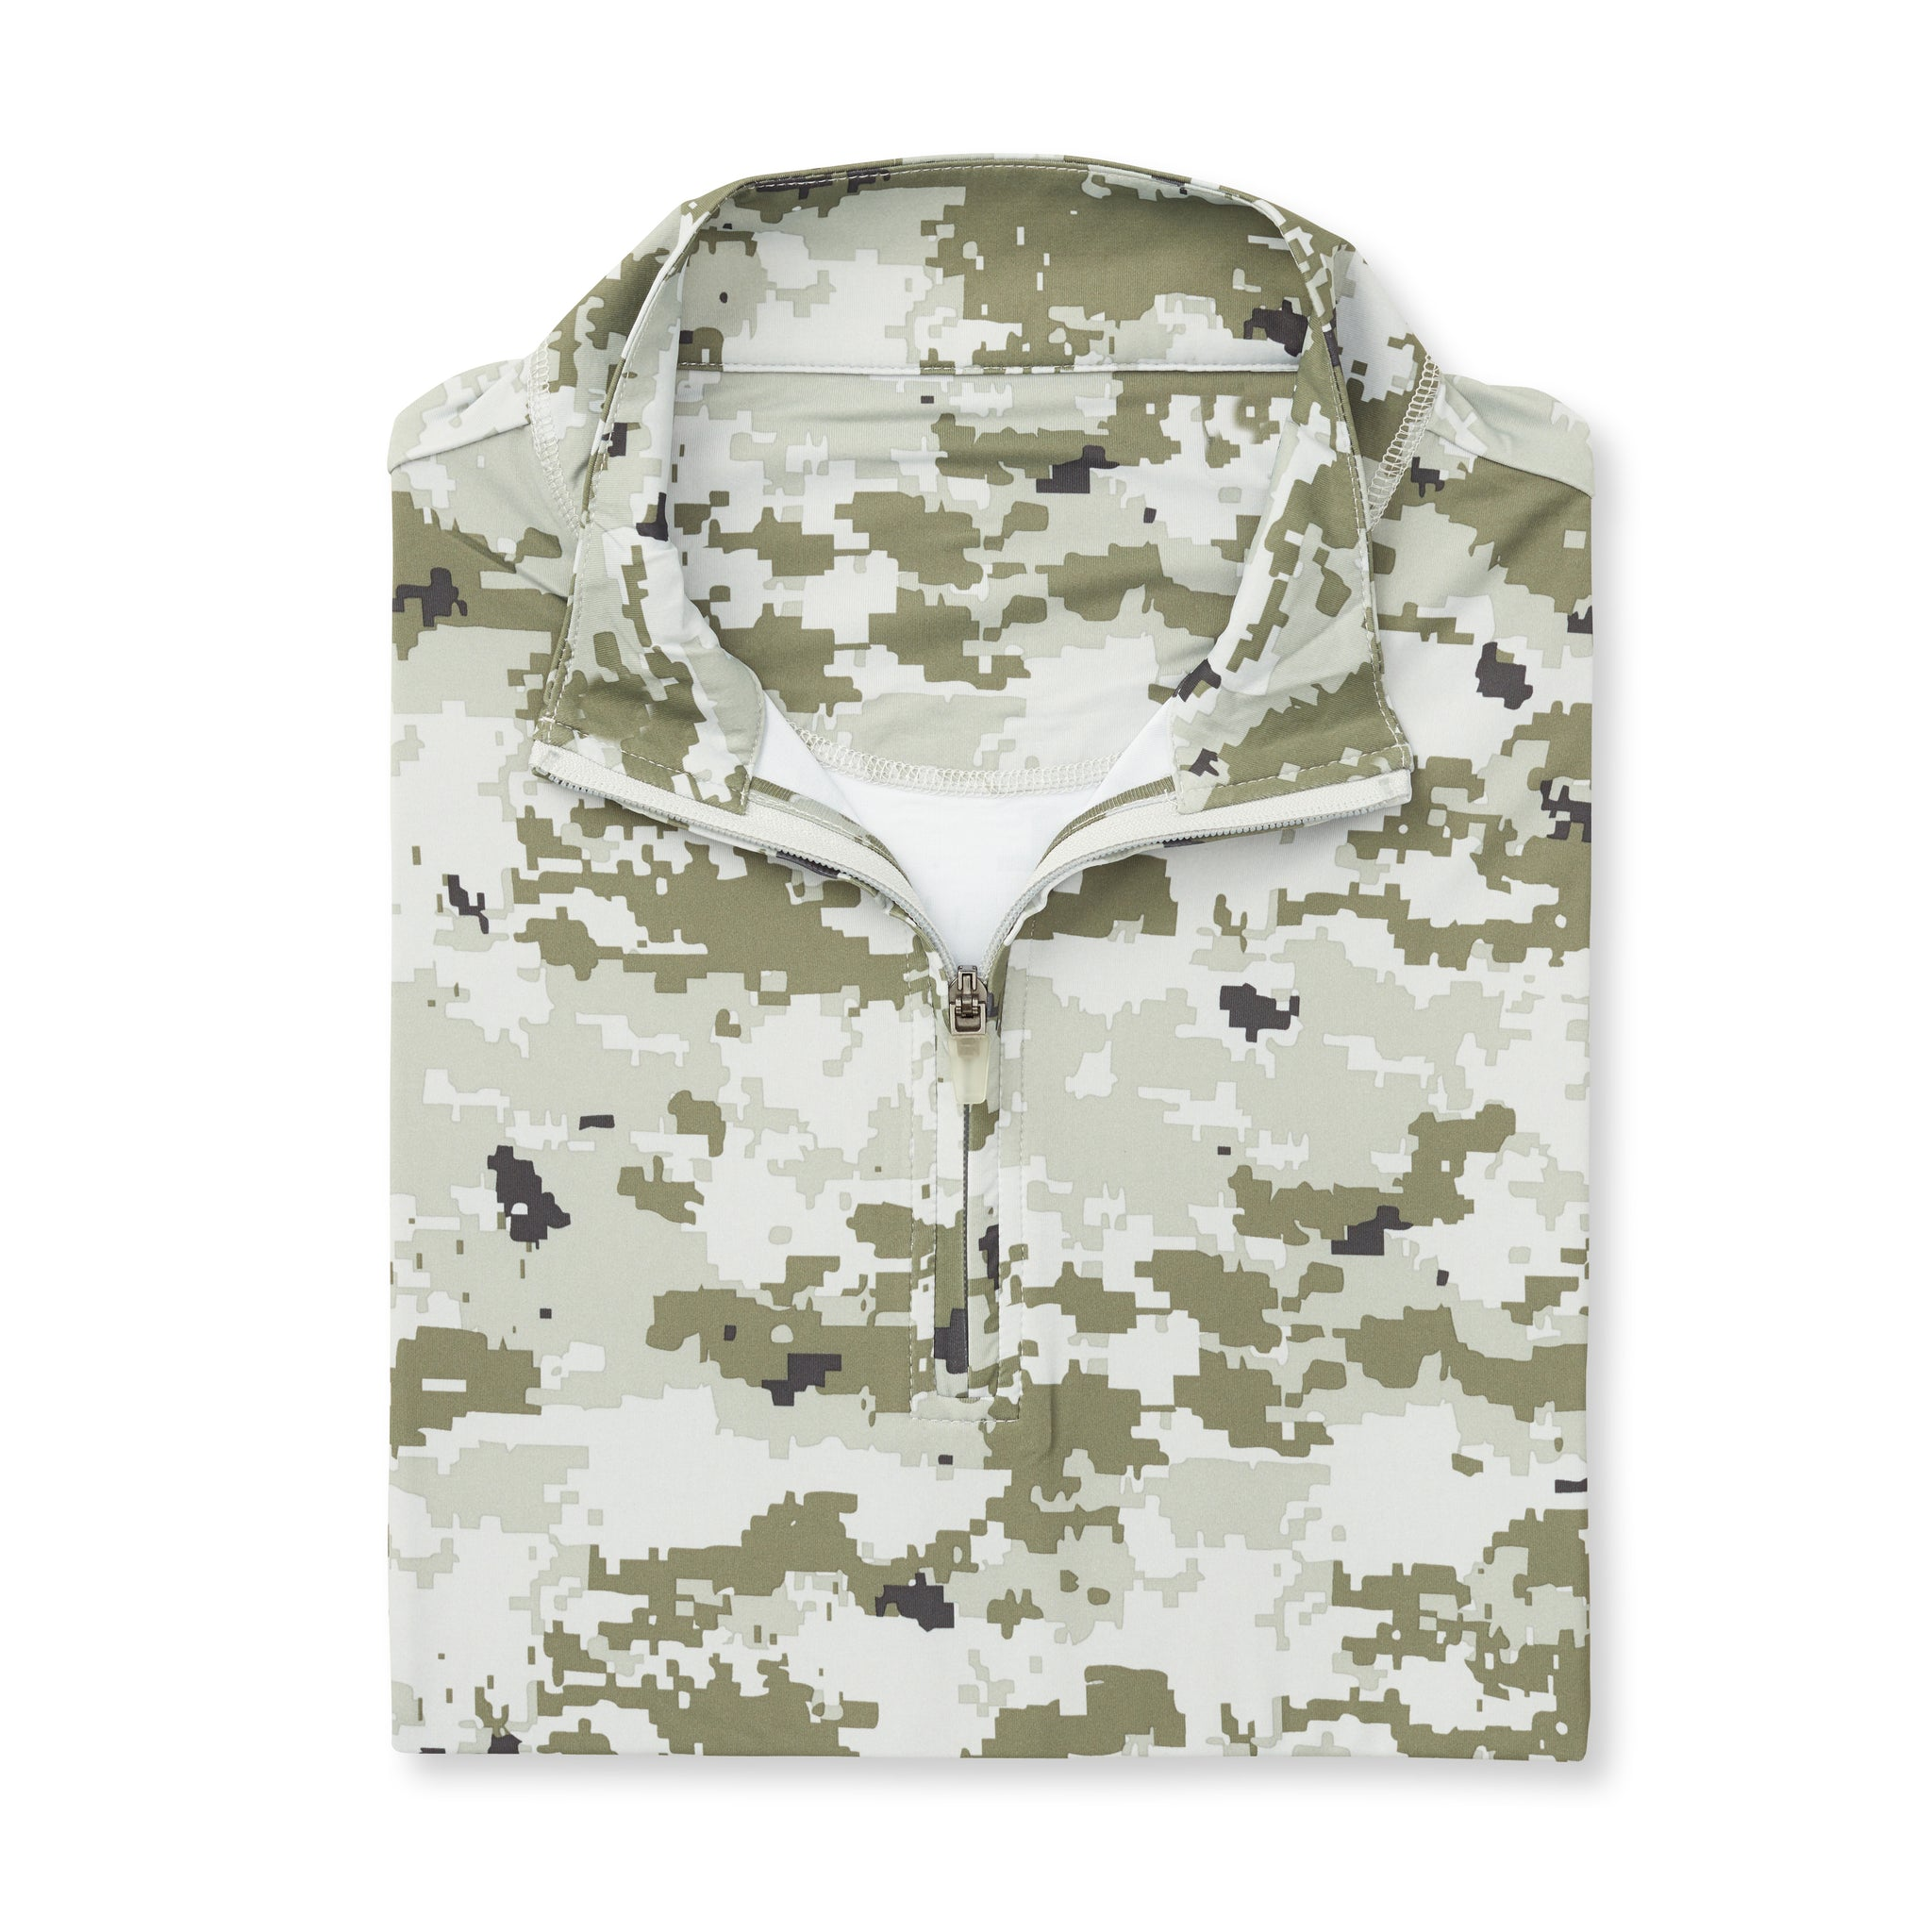 Digital Camo Half Zip - Desert IS46005